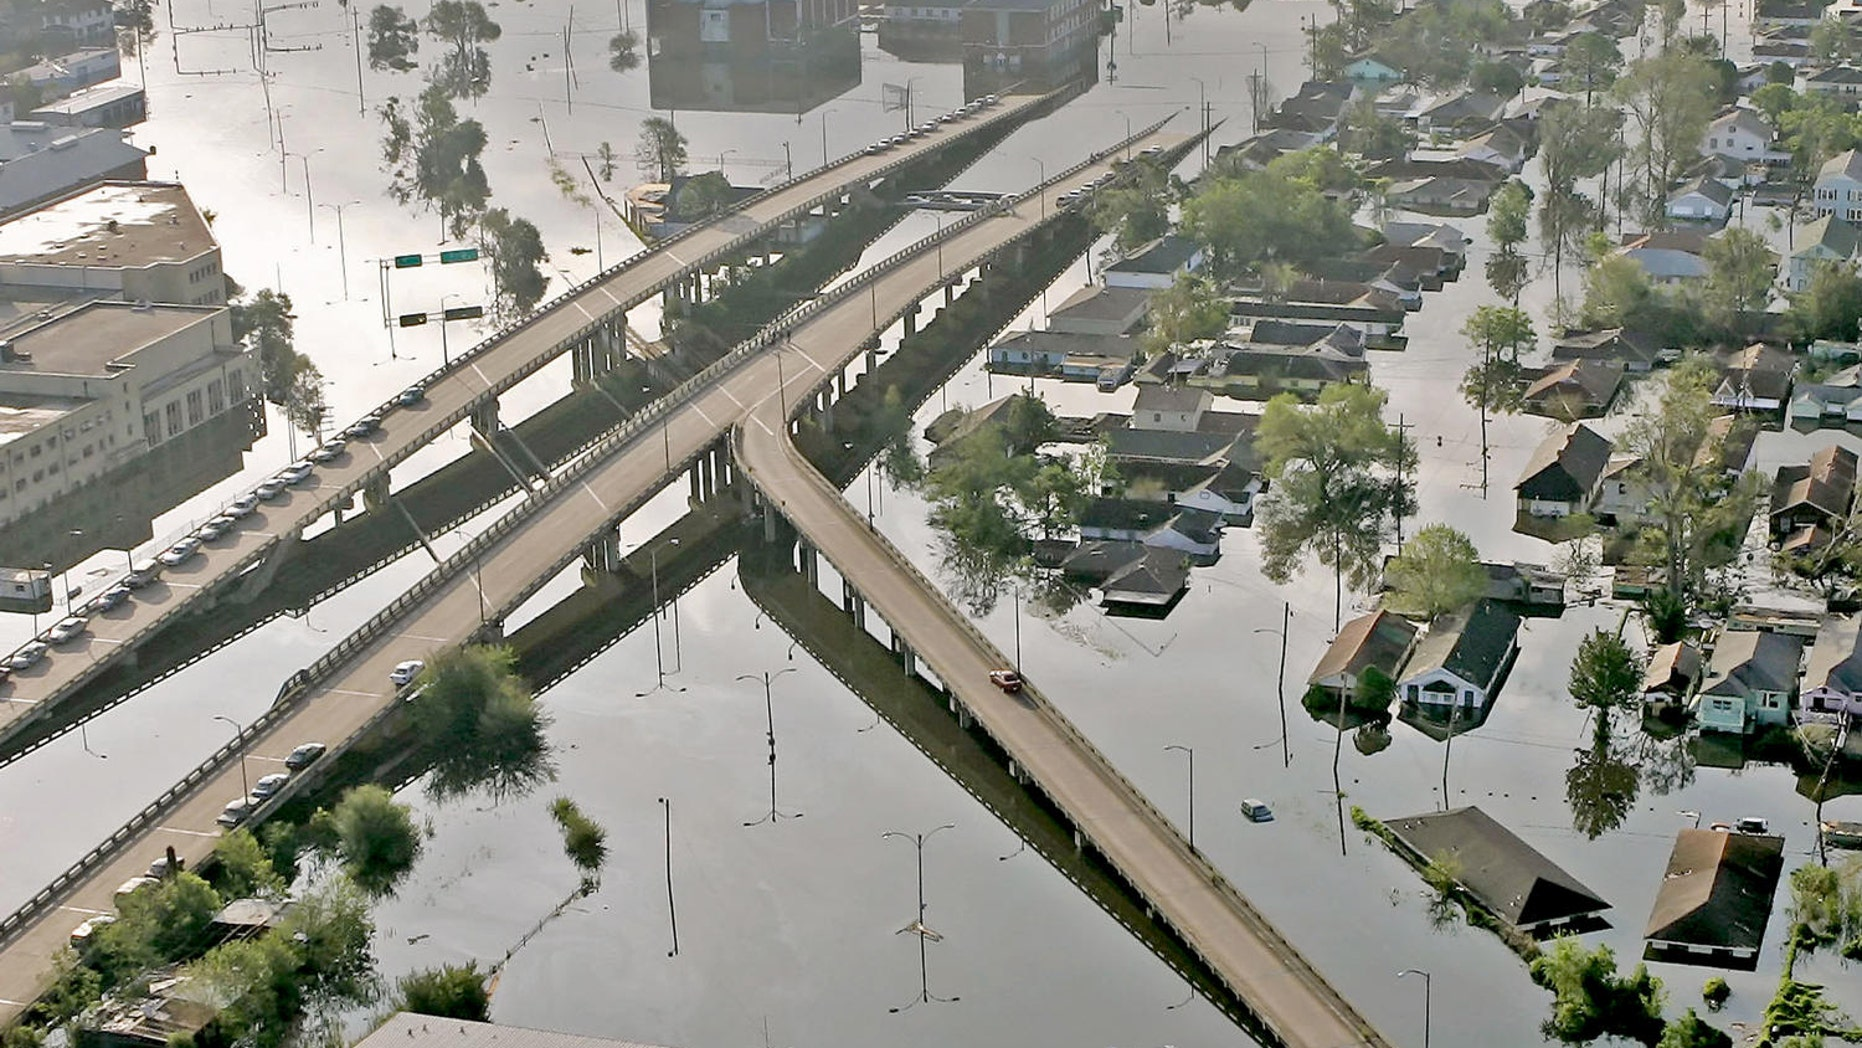 Aug. 30, 2005: Floodwaters from Hurricane Katrina fill the streets near downtown New Orleans.